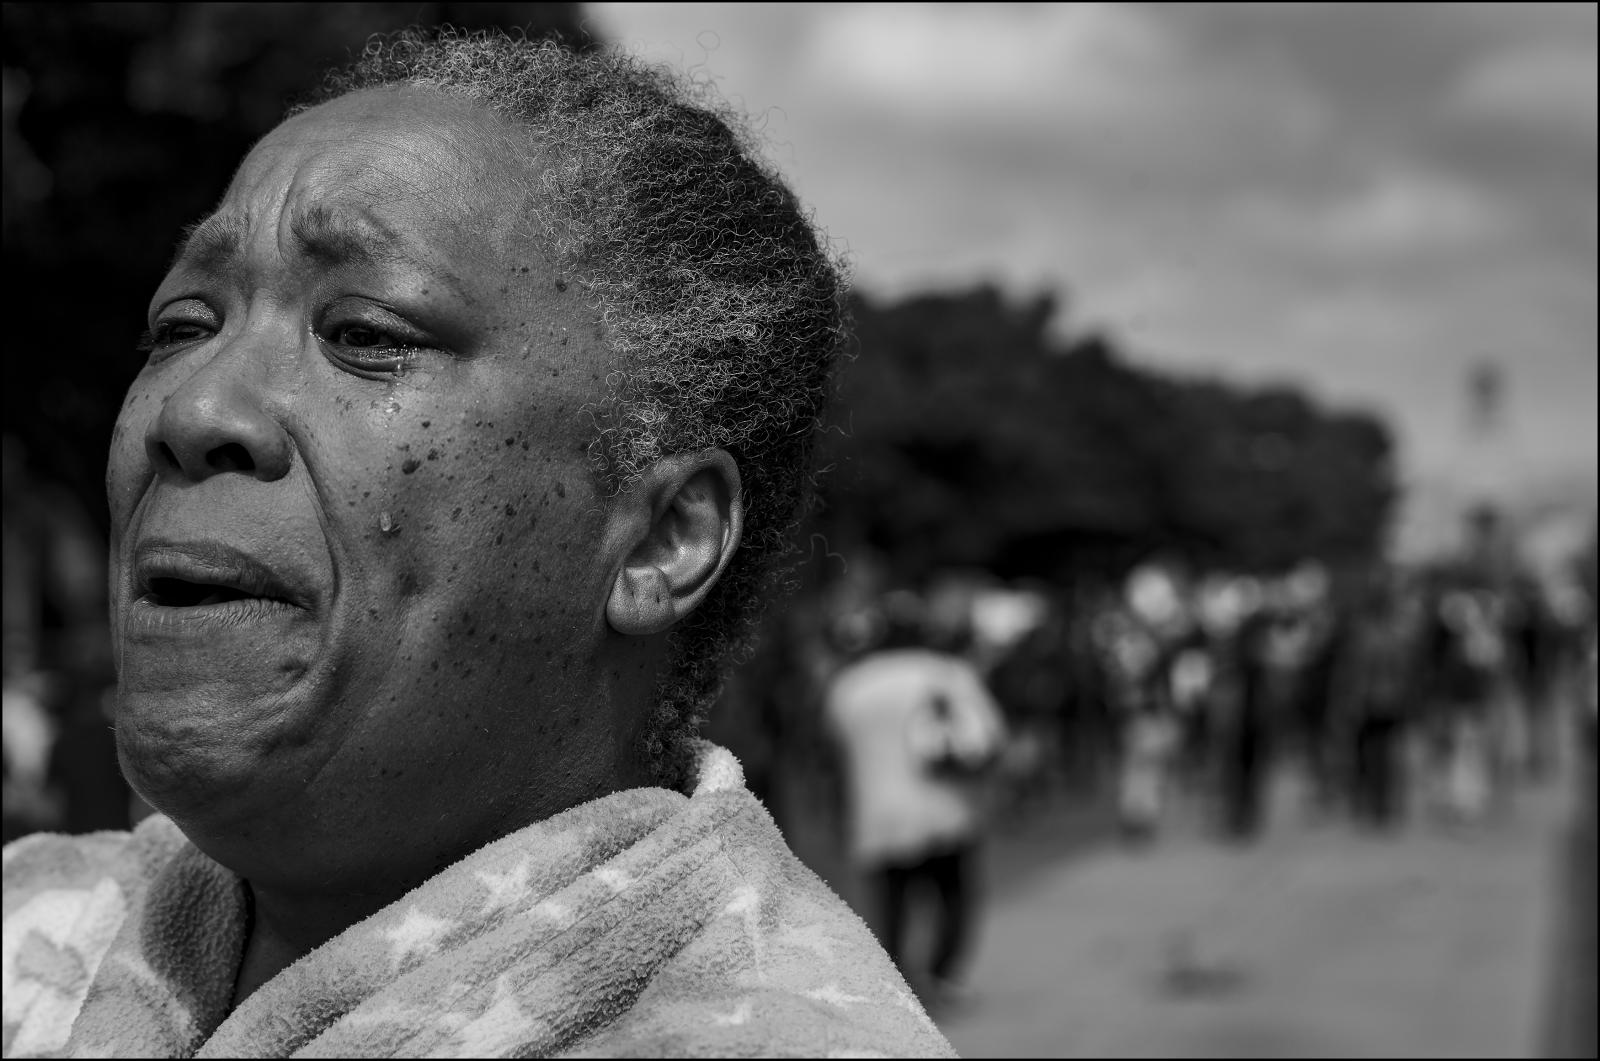 Teresa A. Pitts breaks into tears as a Anti-Police violence march passes her home on San Vicente Blvd & Carmona in Mid-Wilshire area of Los Angeles, CA 06/06/2020